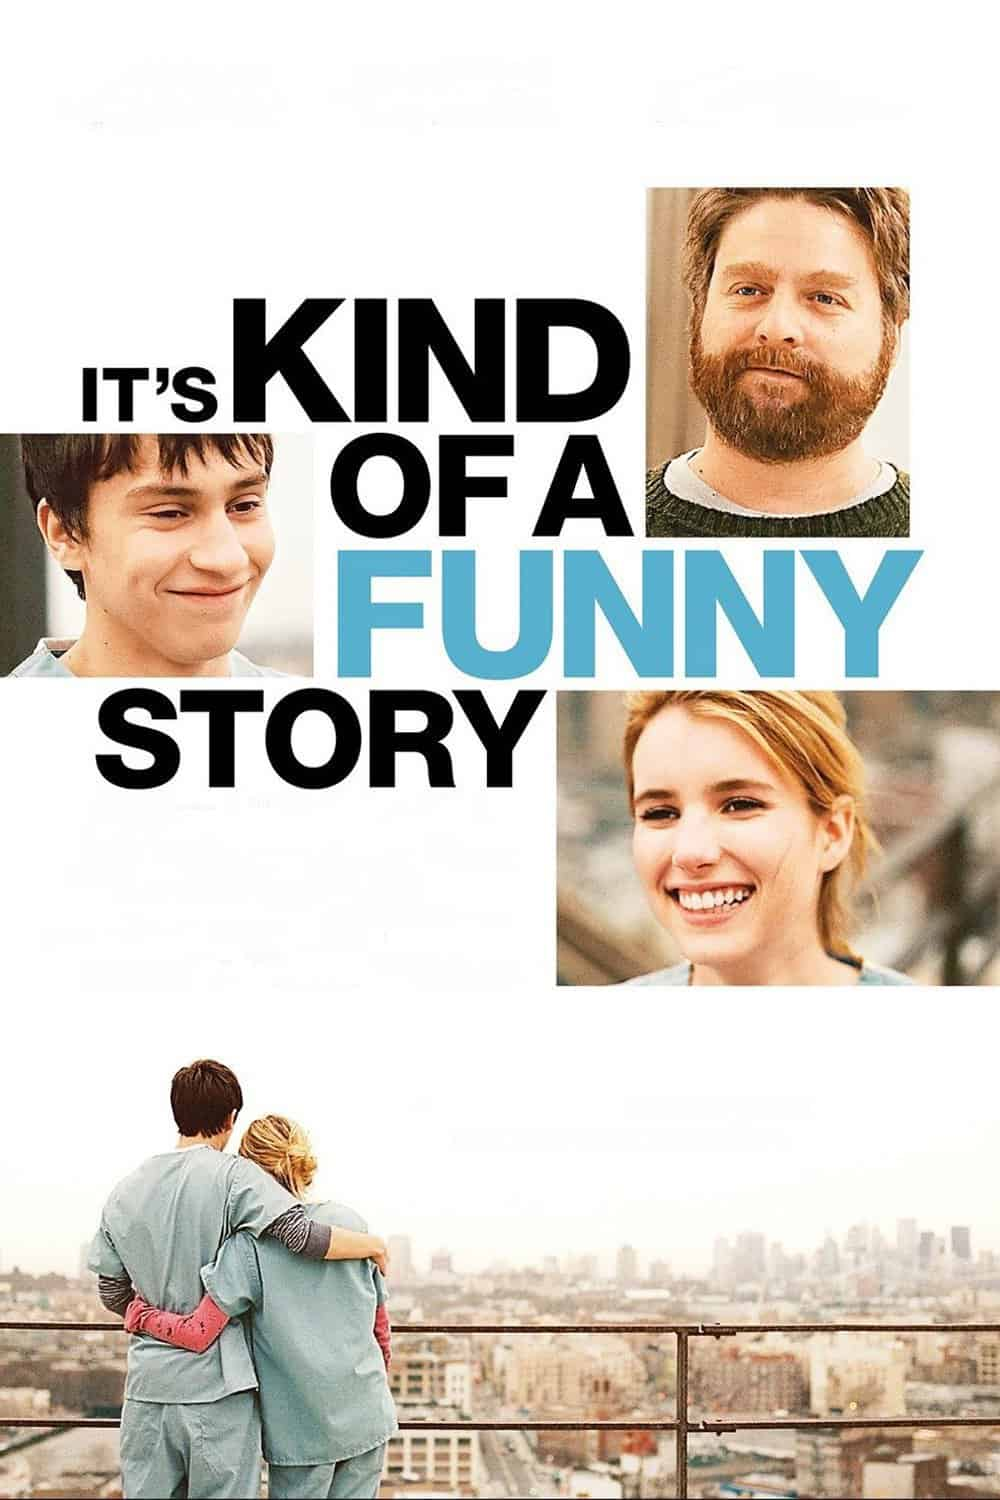 It's Kind of a Funny Story, 2010